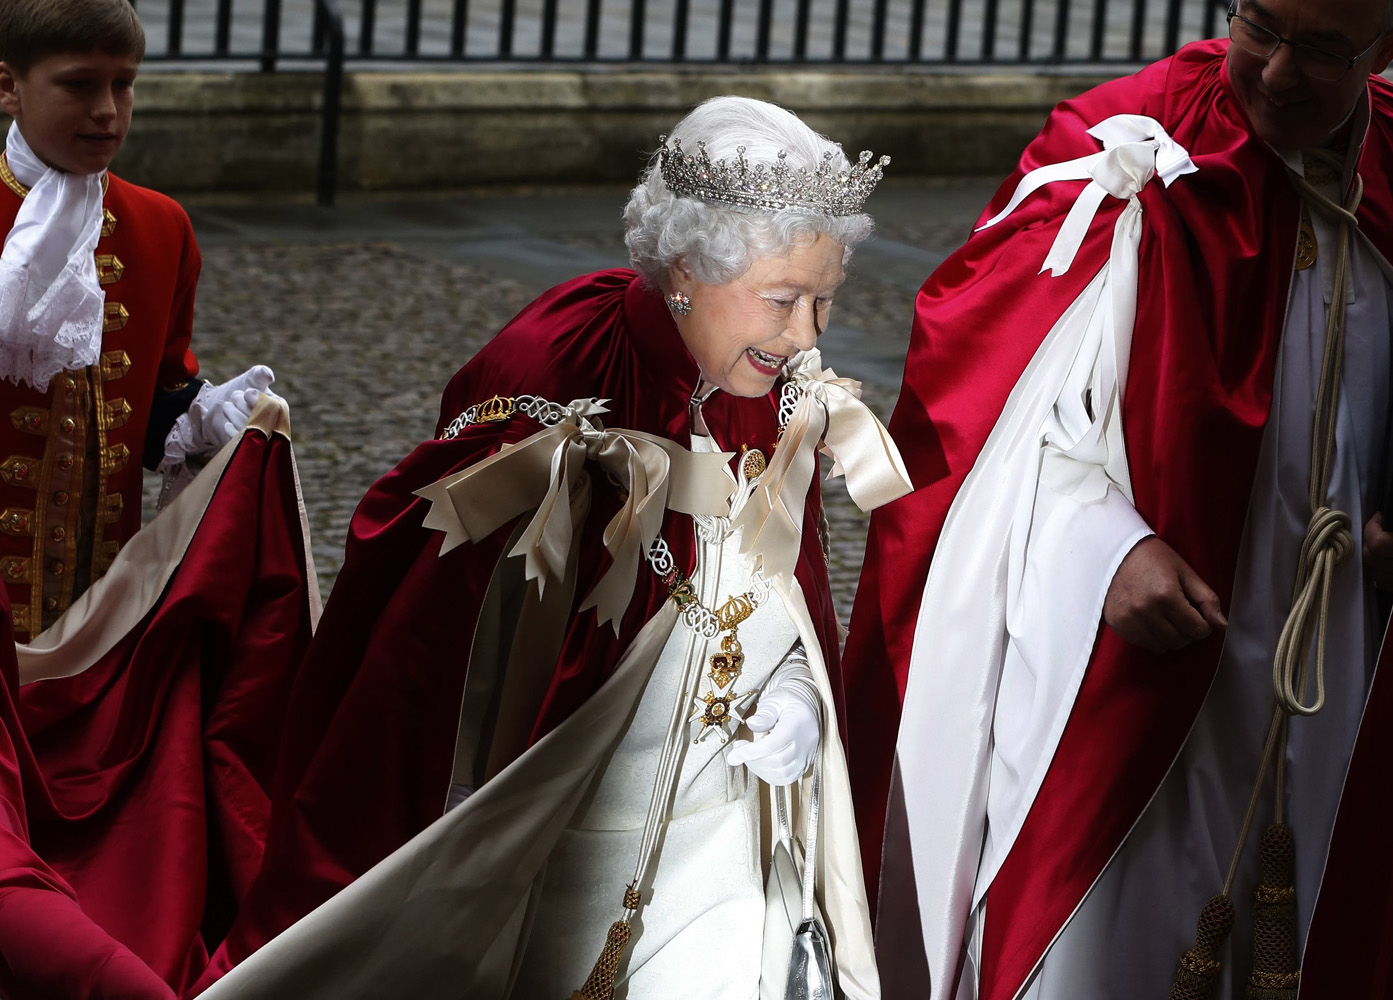 May 9 , 2014. Britain's Queen Elizabeth arrives for a Service of the Order of the Bath at Westminster Abbey in London, England.